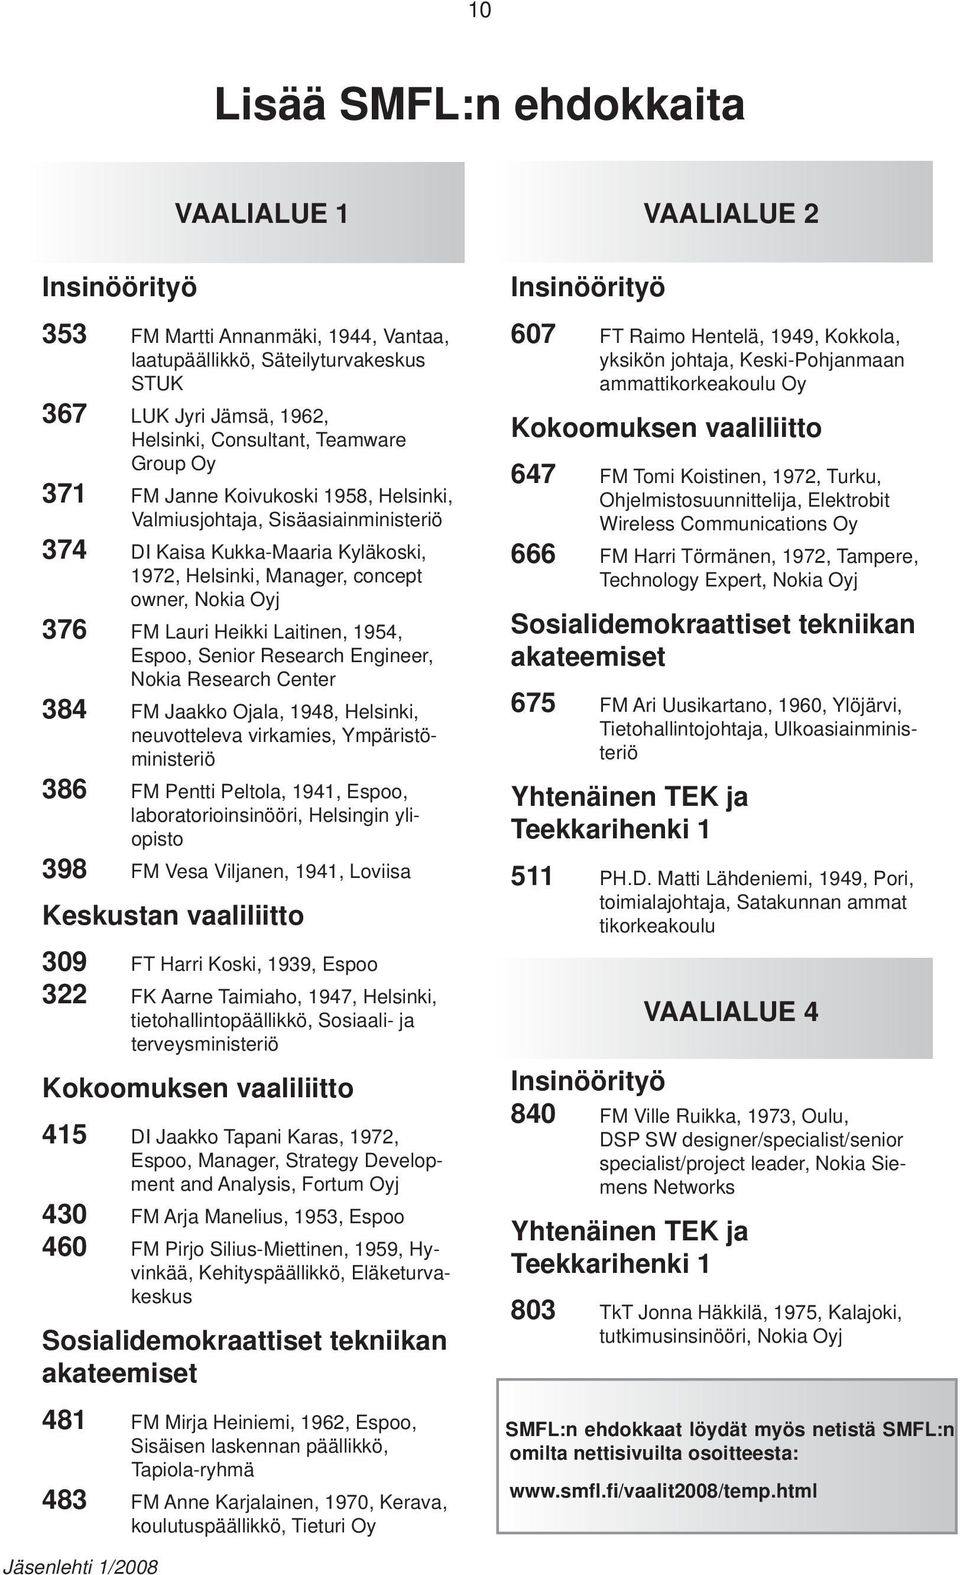 Laitinen, 1954, Espoo, Senior Research Engineer, Nokia Research Center 384 FM Jaakko Ojala, 1948, Helsinki, neuvotteleva virkamies, Ympäristöministeriö 386 FM Pentti Peltola, 1941, Espoo,